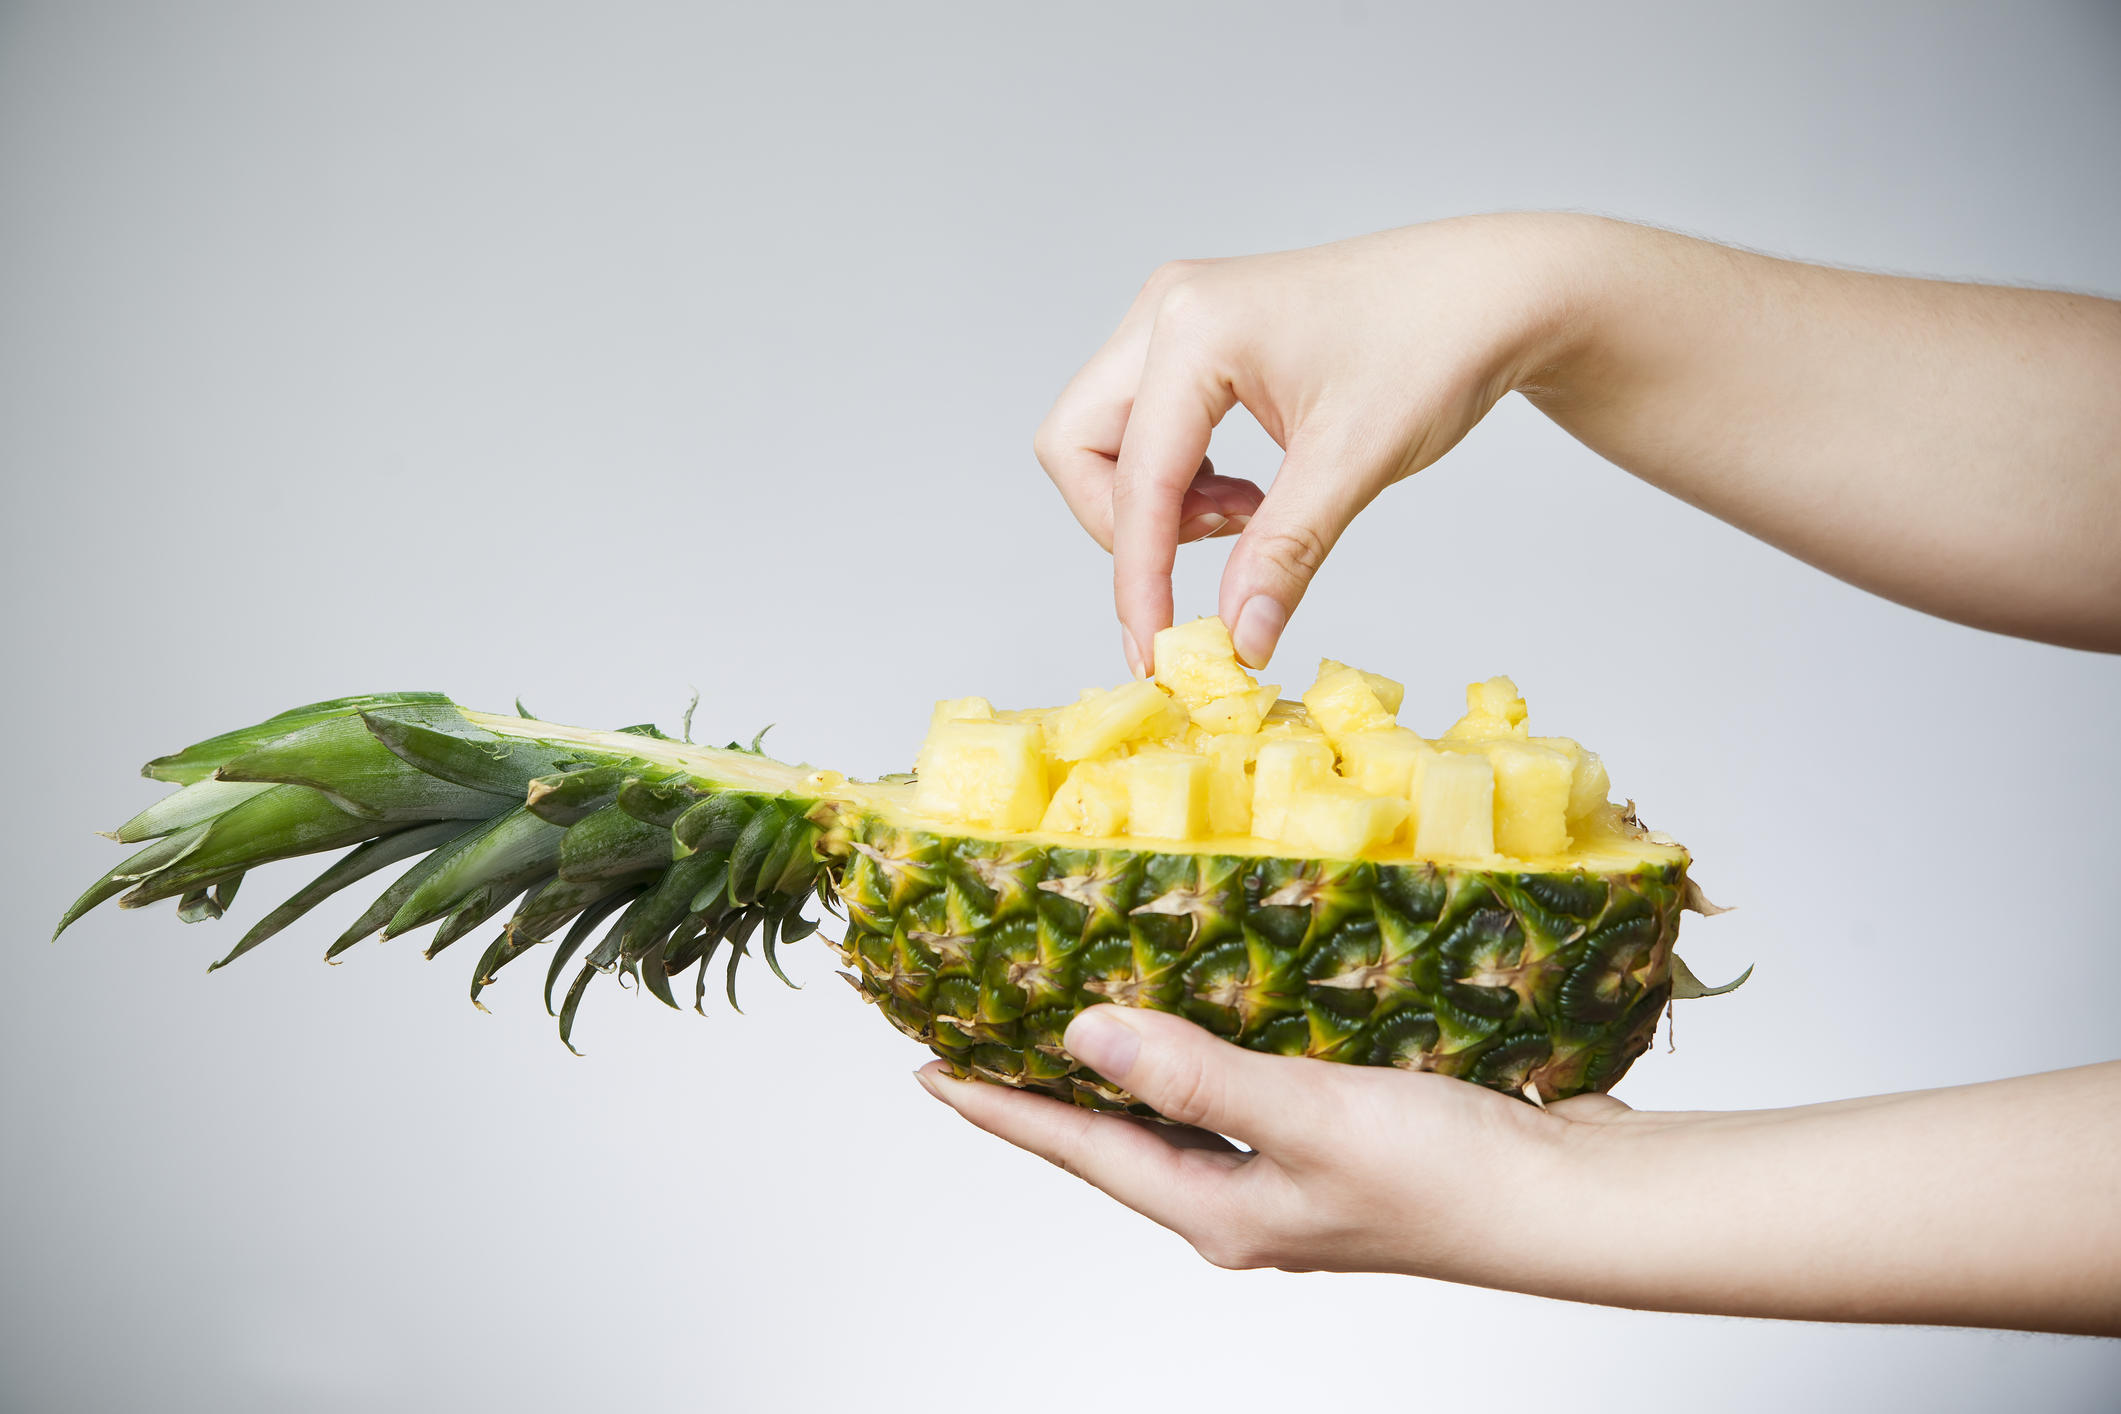 Pineapple in female hands on gray background. Weight loss, diet